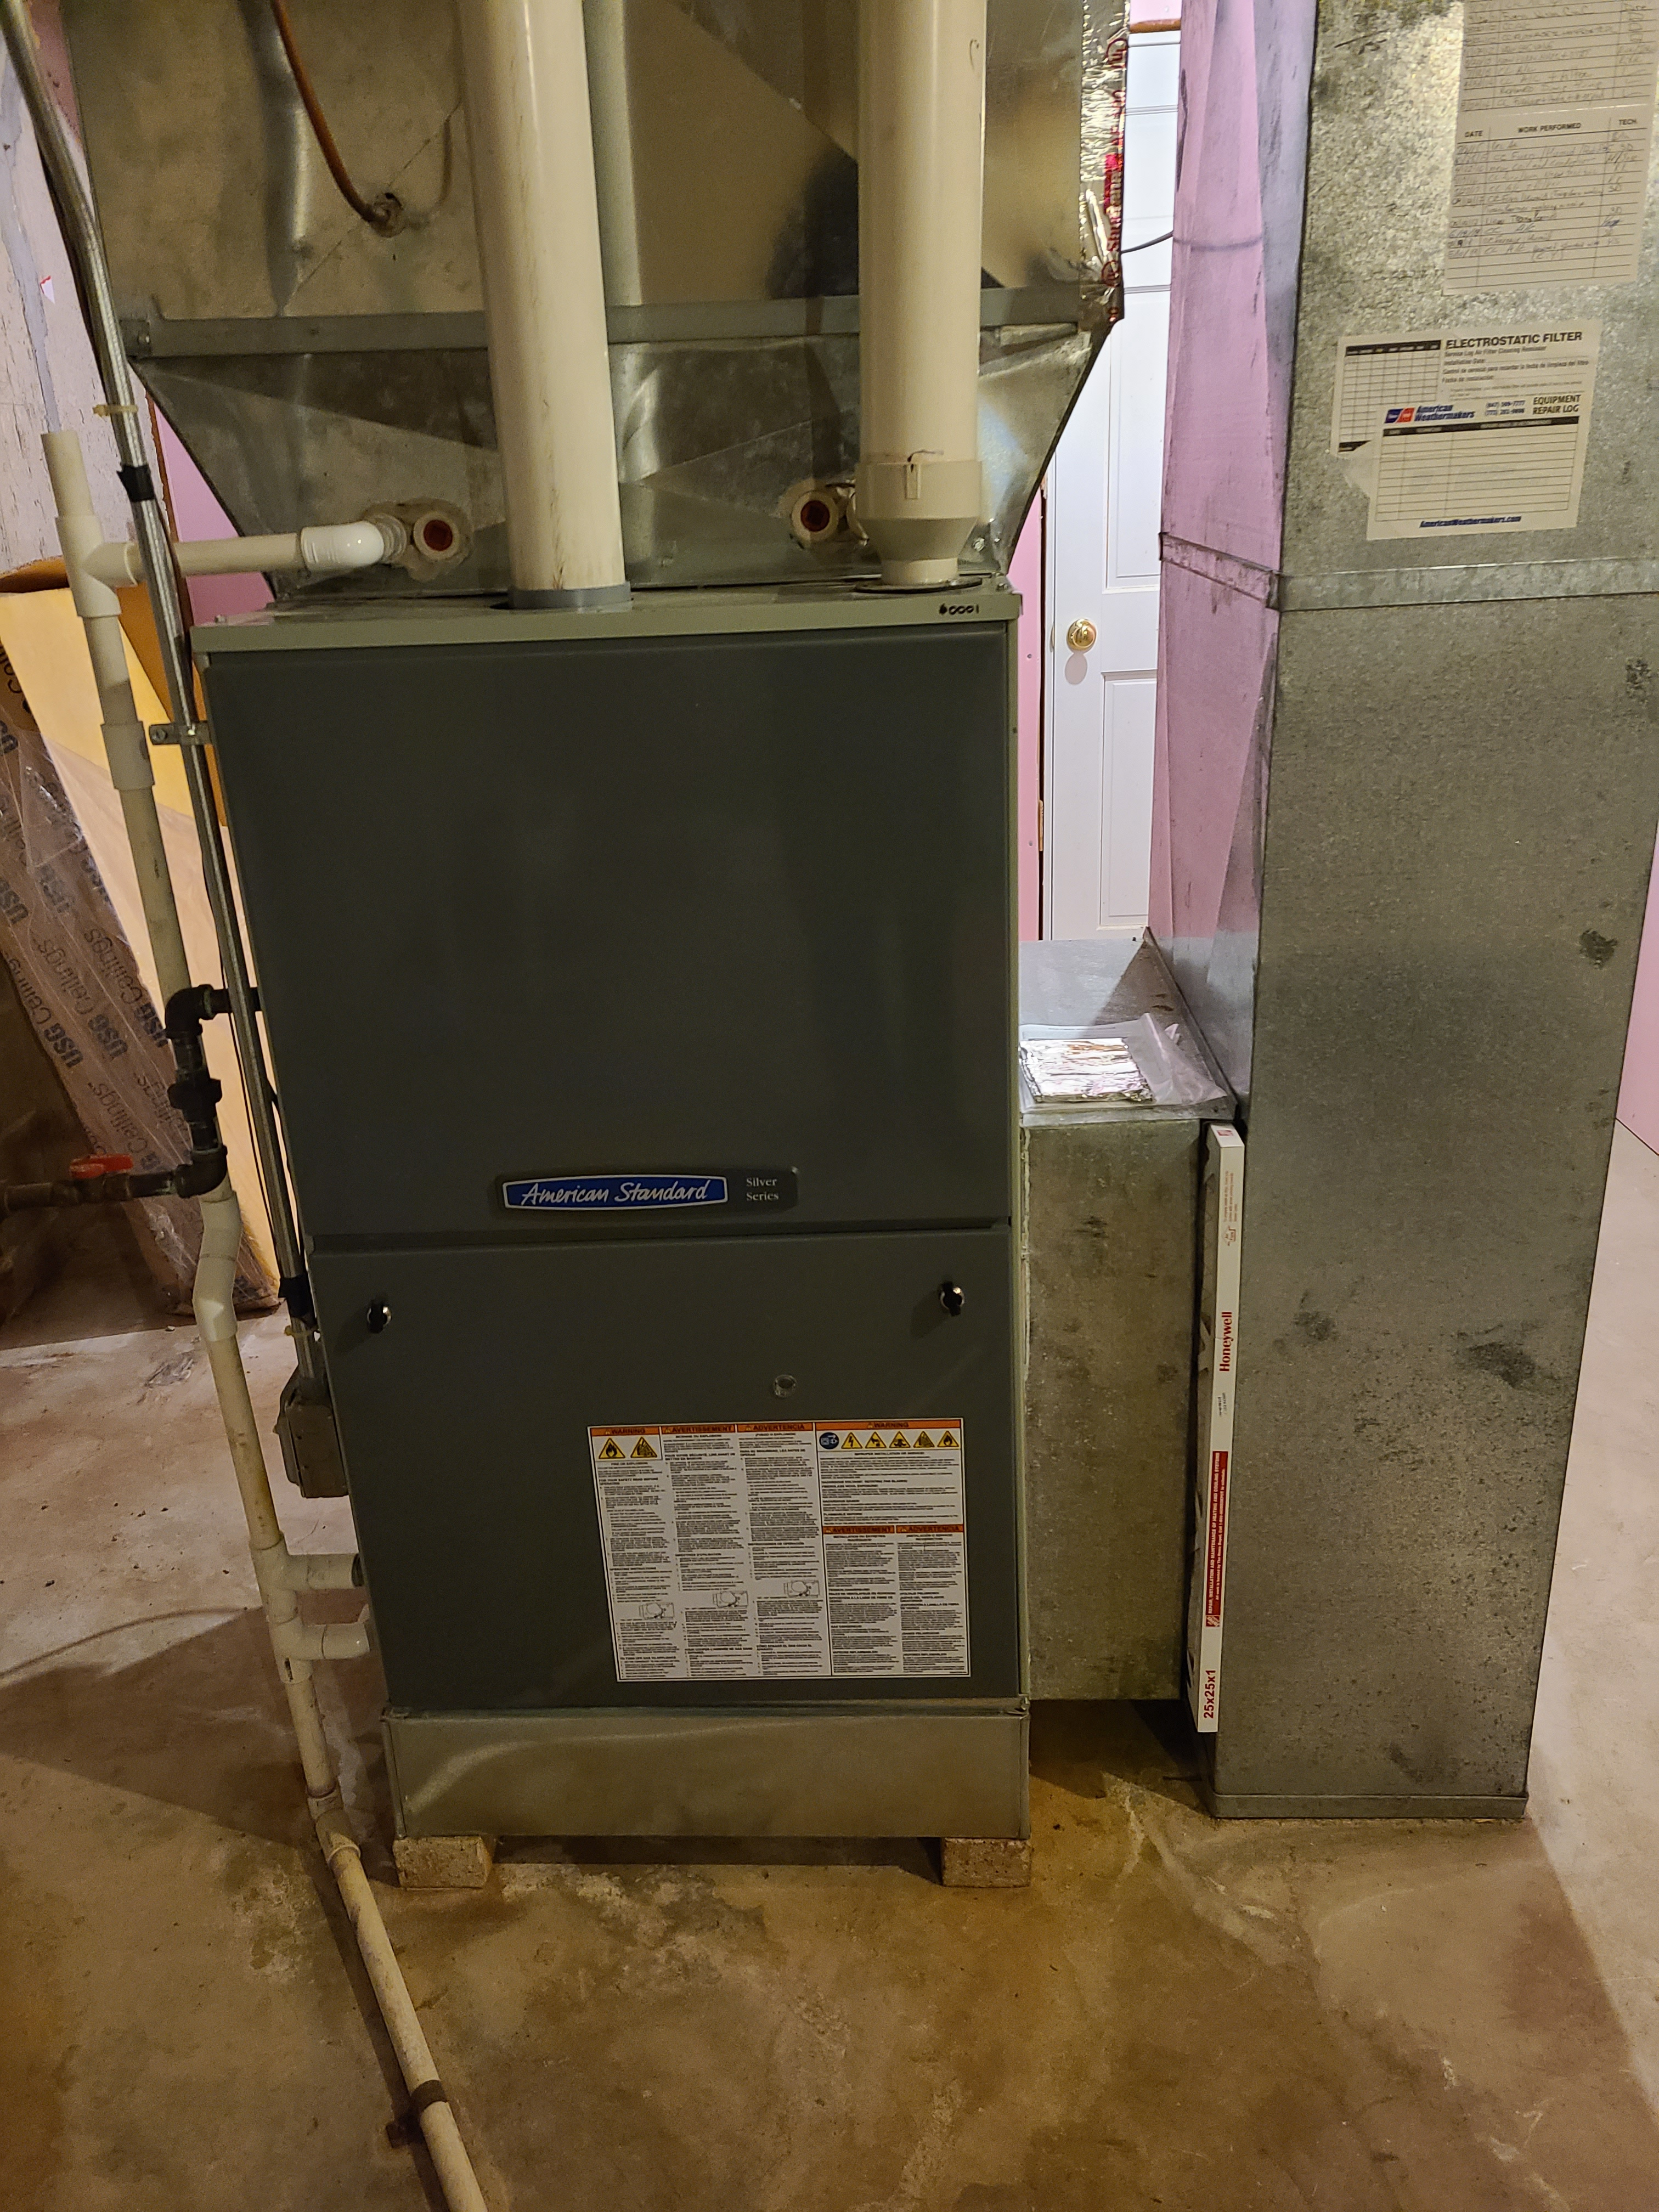 Performed annual maintenance on the American Standard furnace and Aprilaire humidifier  Made adjustments to improve the efficiency and life expectancy of the equipment.